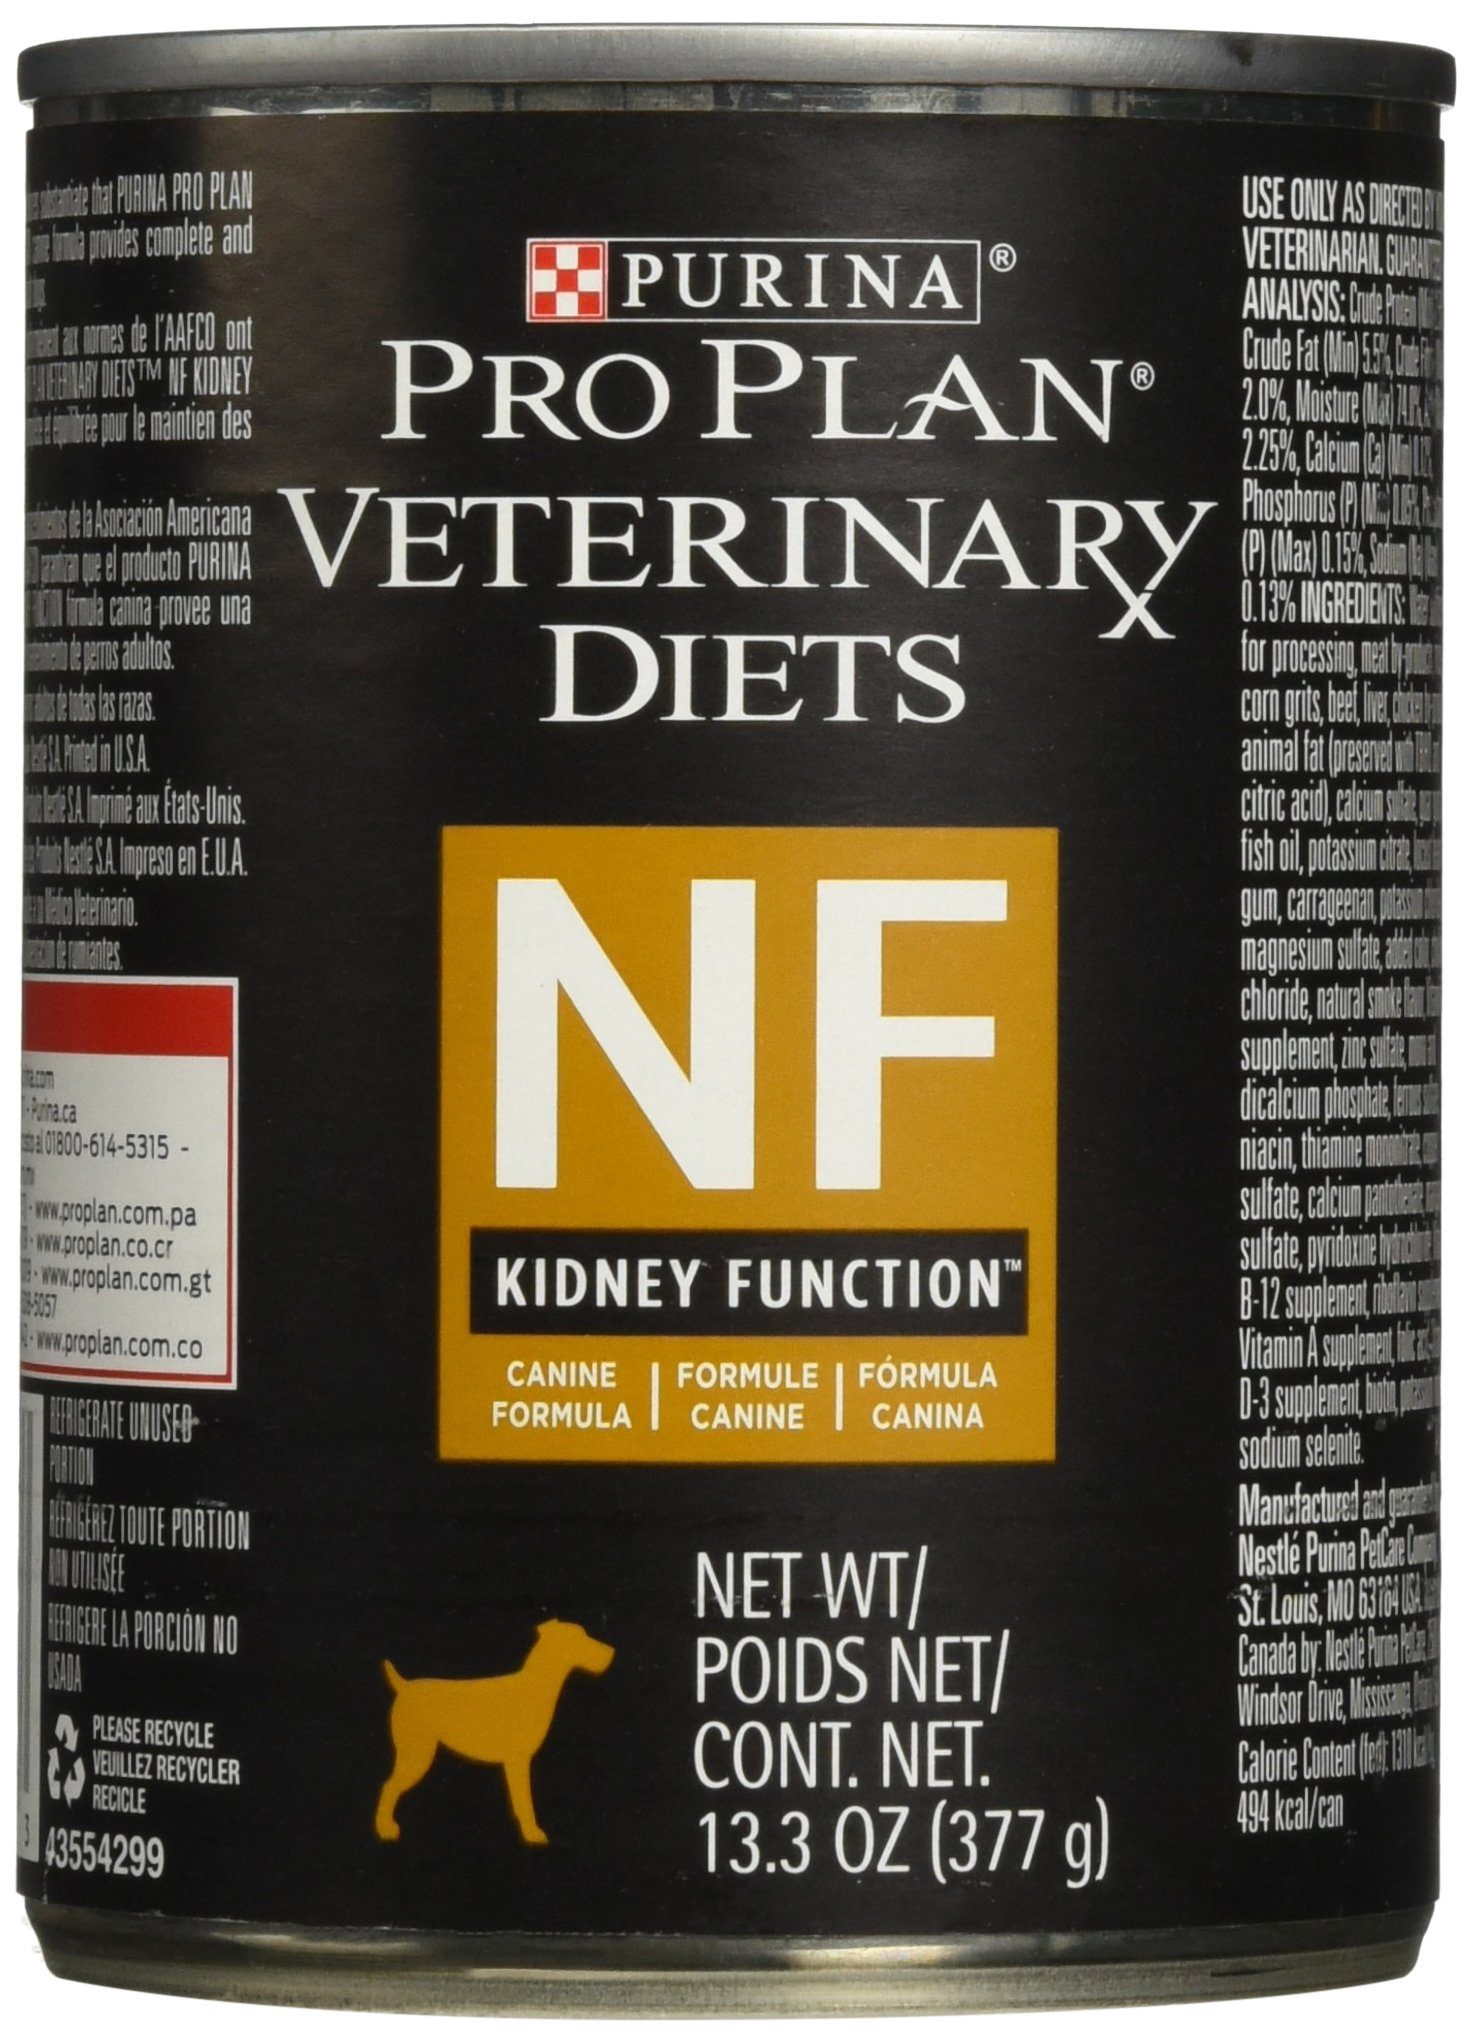 Purina NF KidNey Function Canine Formula Canned Dog Food 12/13.3 oz